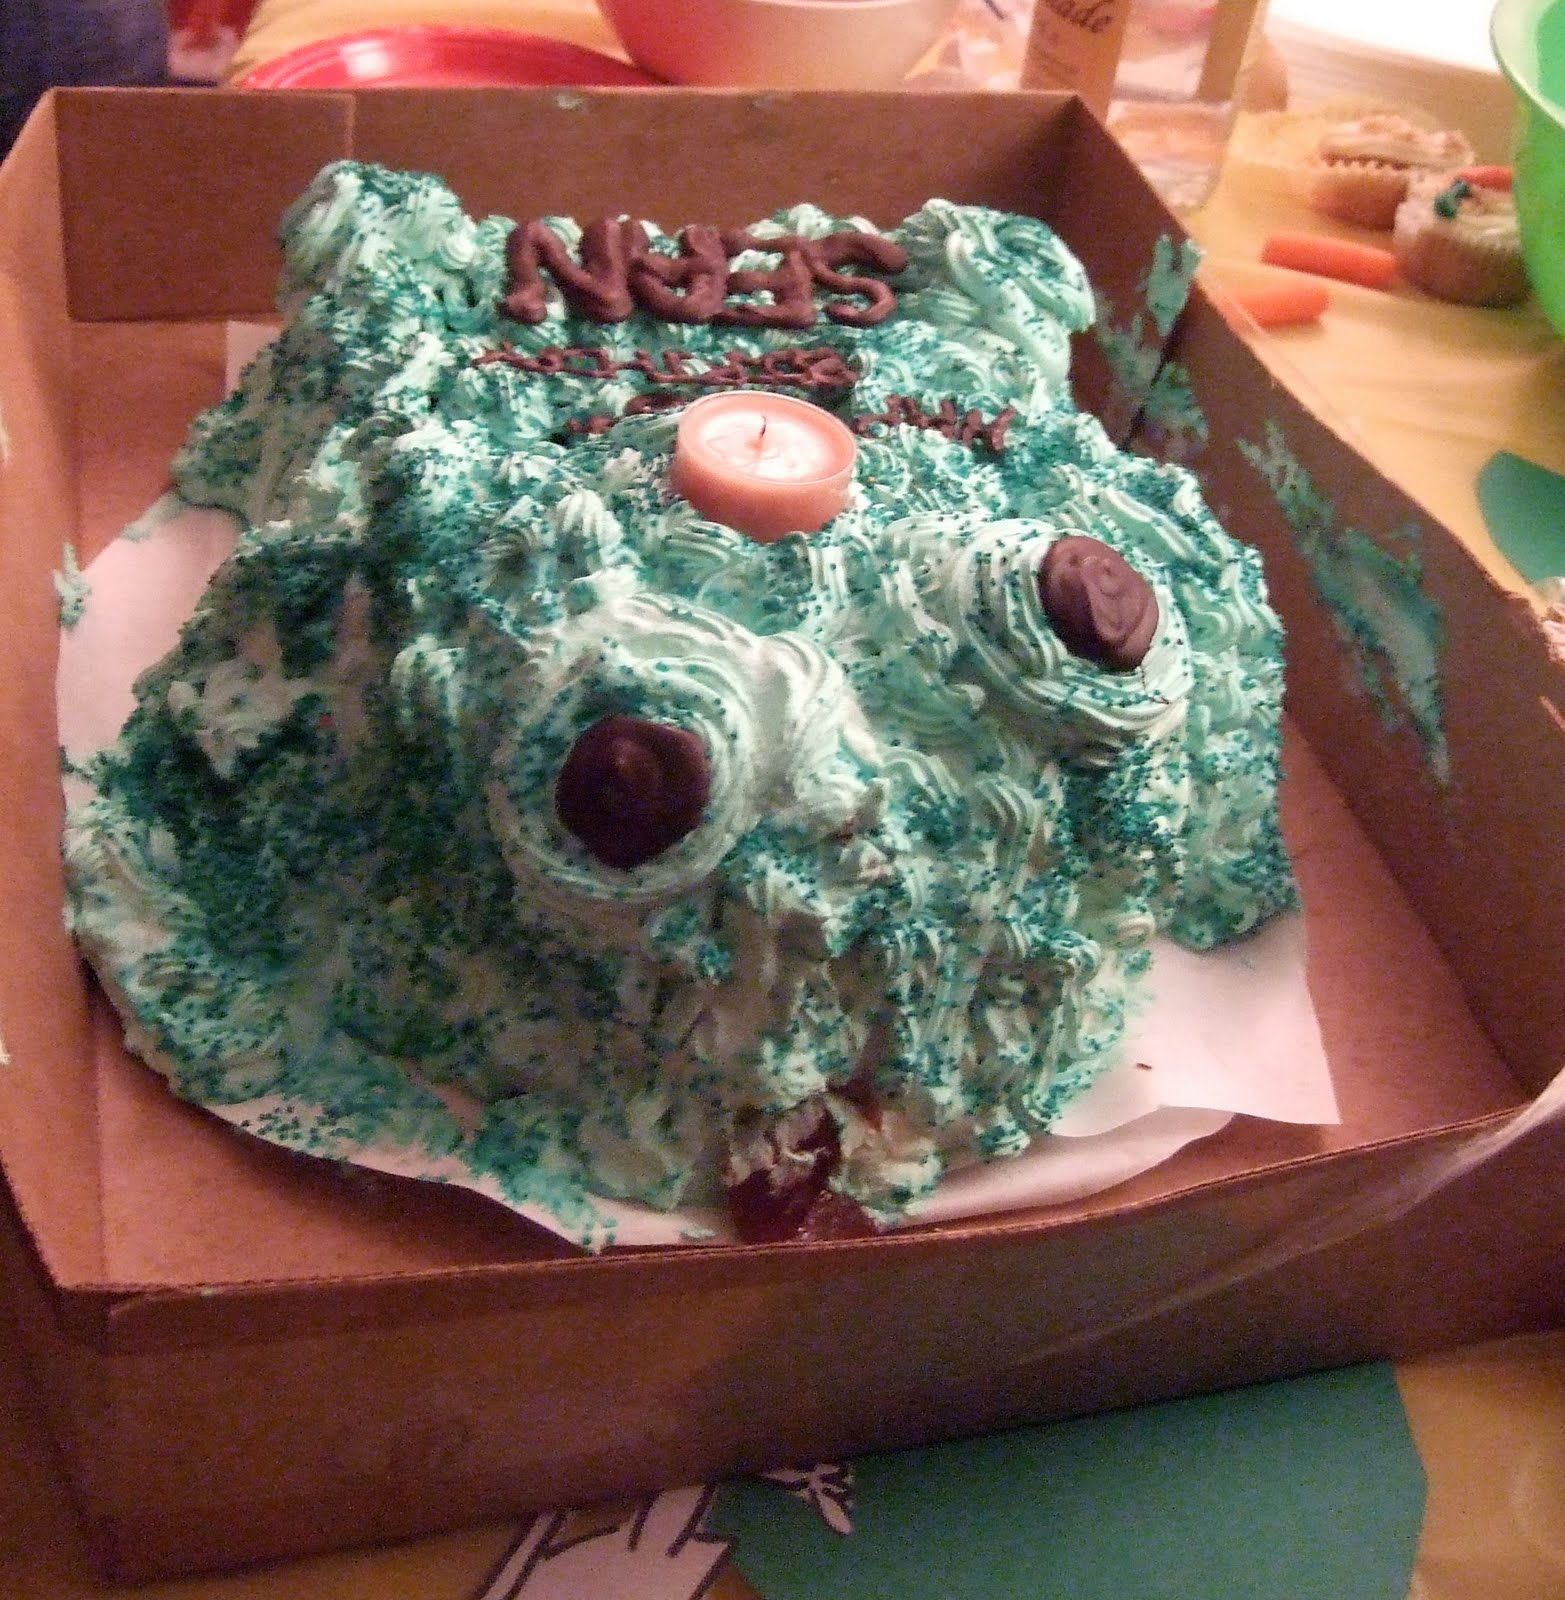 Cake Fails: What's This?